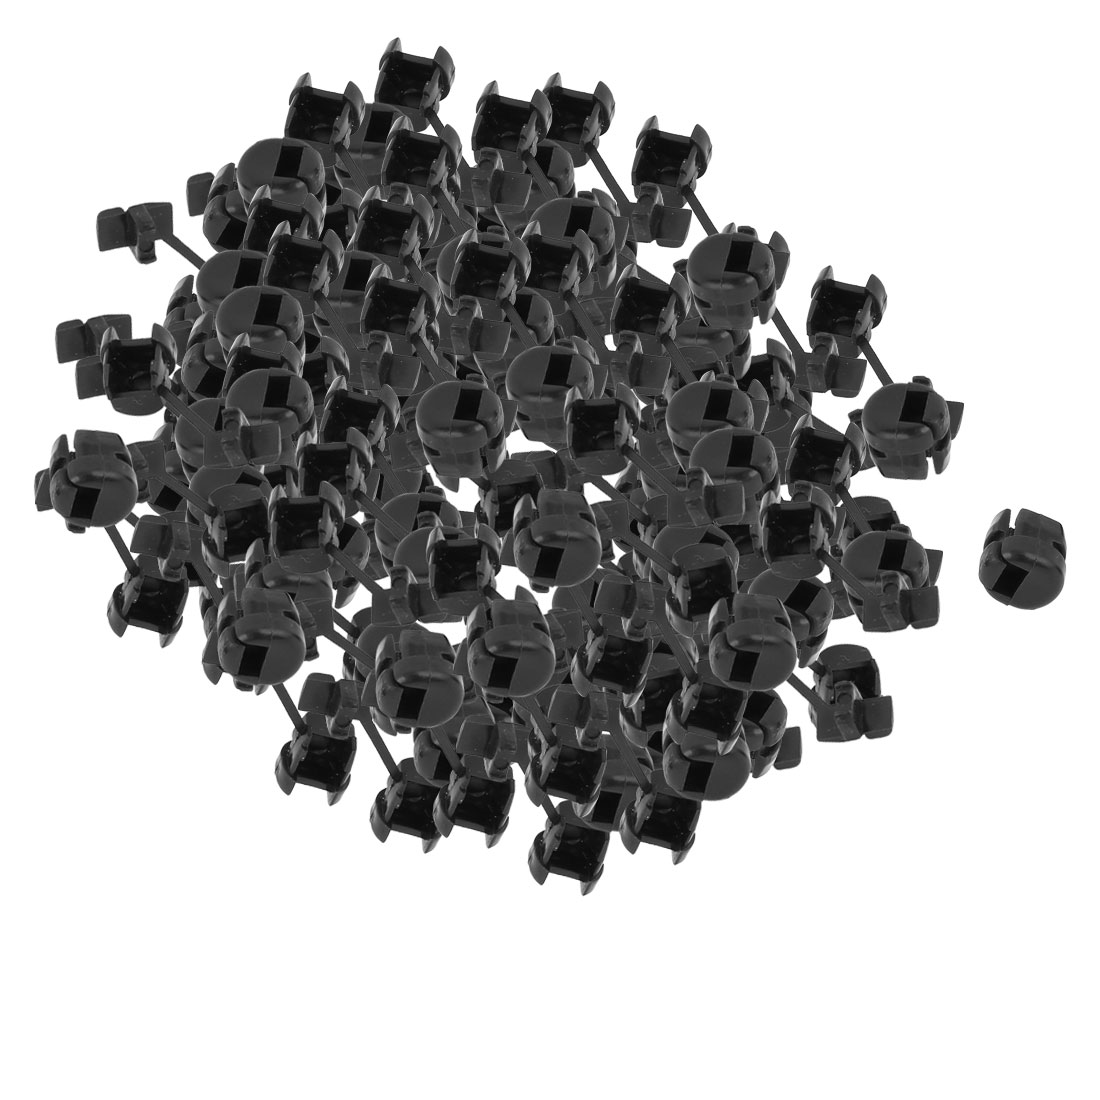 300Pcs HDB-2P-4 Flat Cable Wire Strain Relief Bush Grommet 10.5mm Length